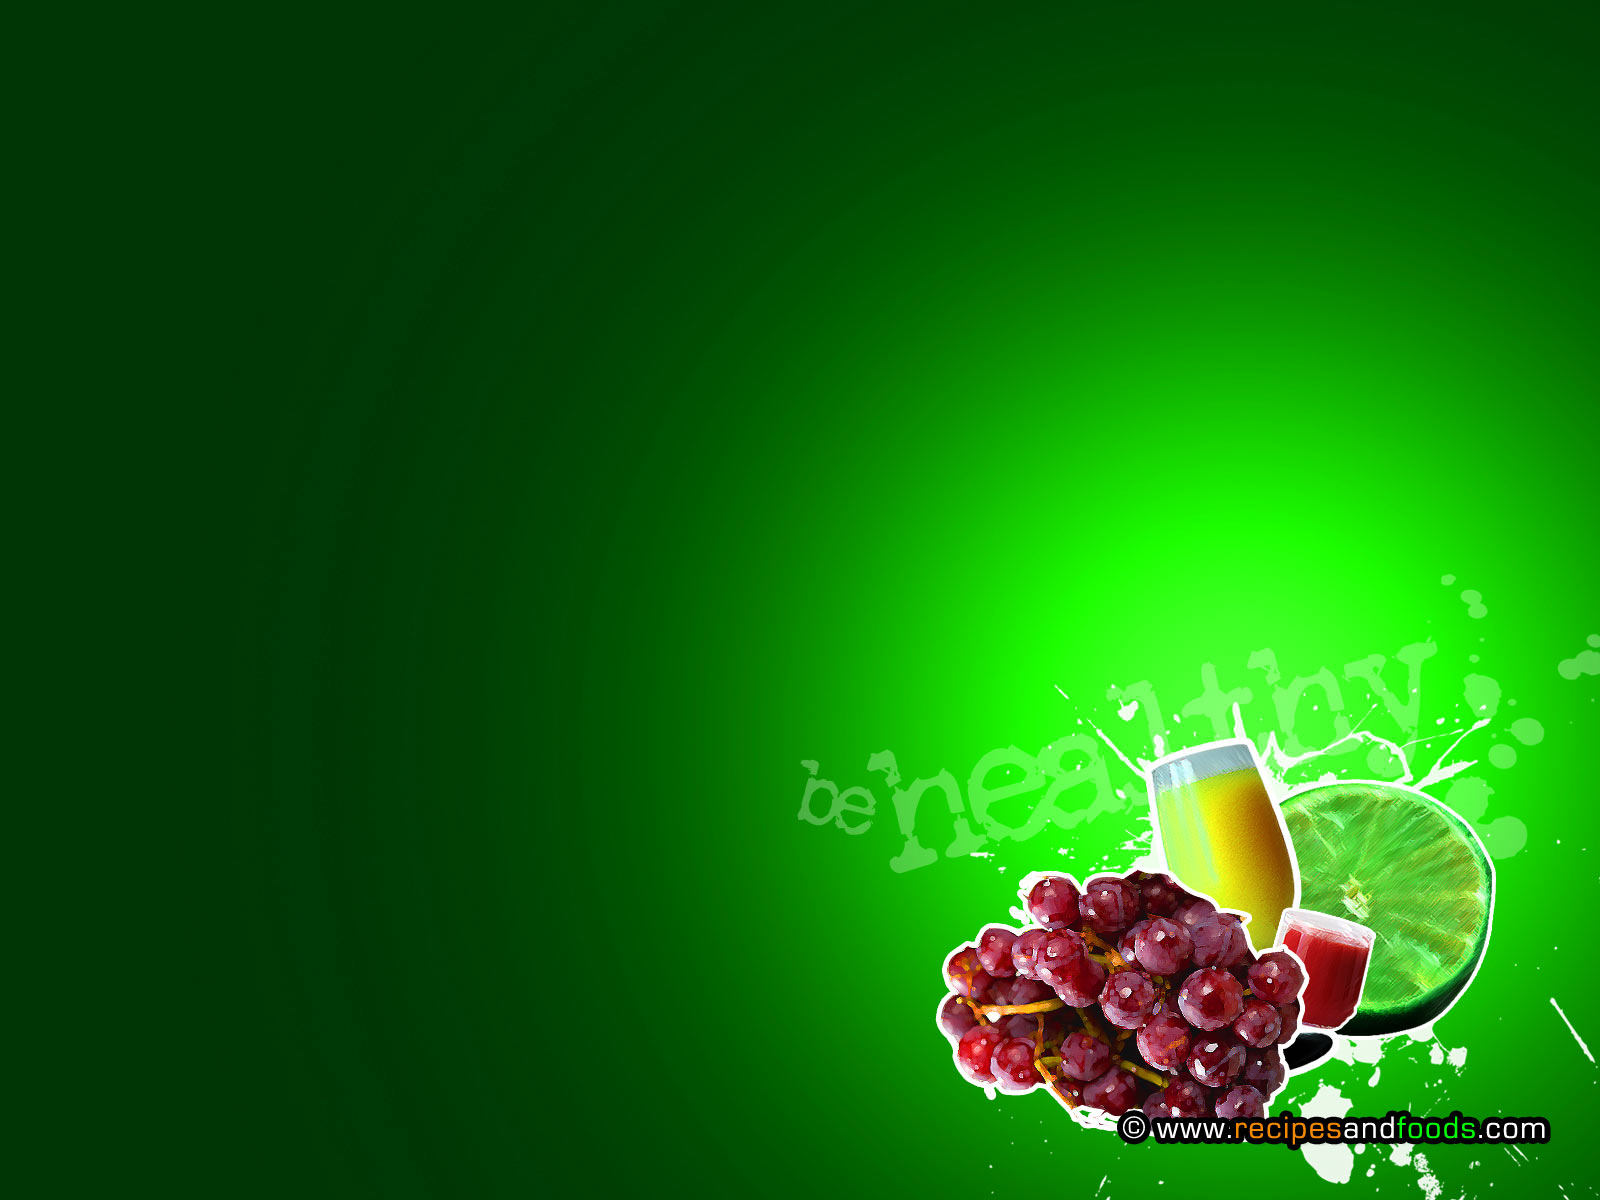 Fruits Foods PPT Backgrounds